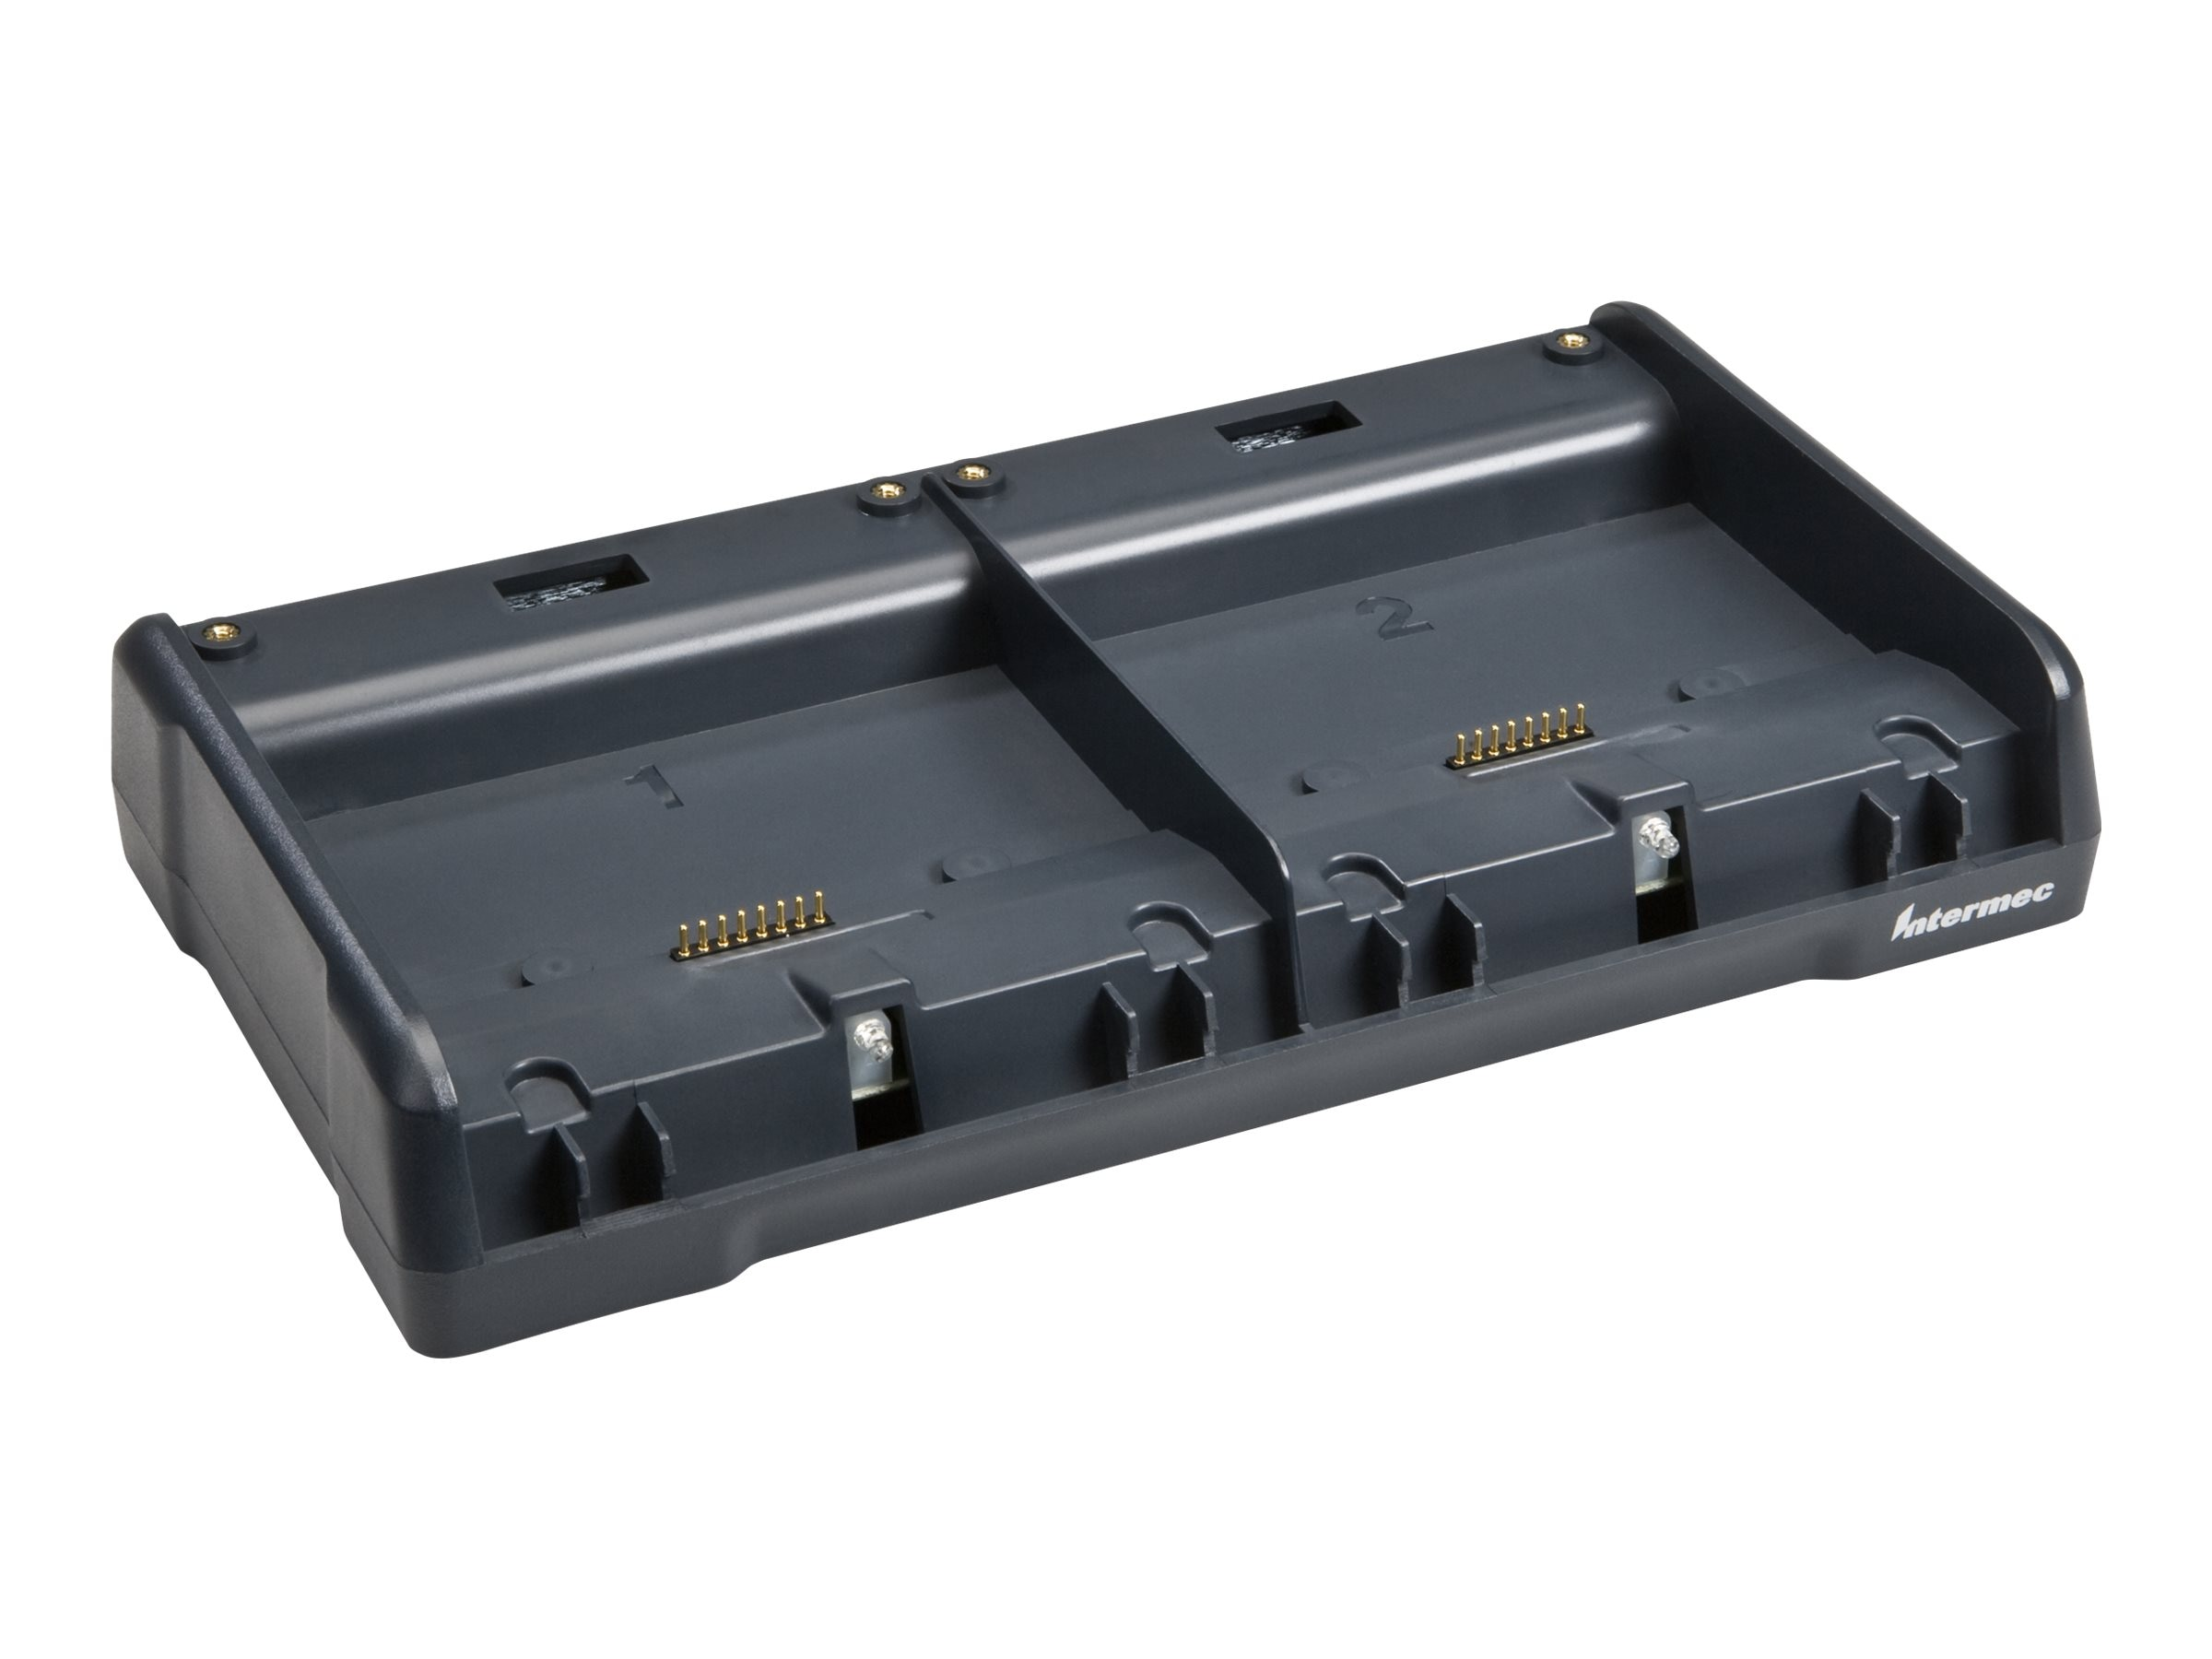 Intermec Flexdock Base Dual Charger Only, 852-918-002, 31244235, Battery Chargers